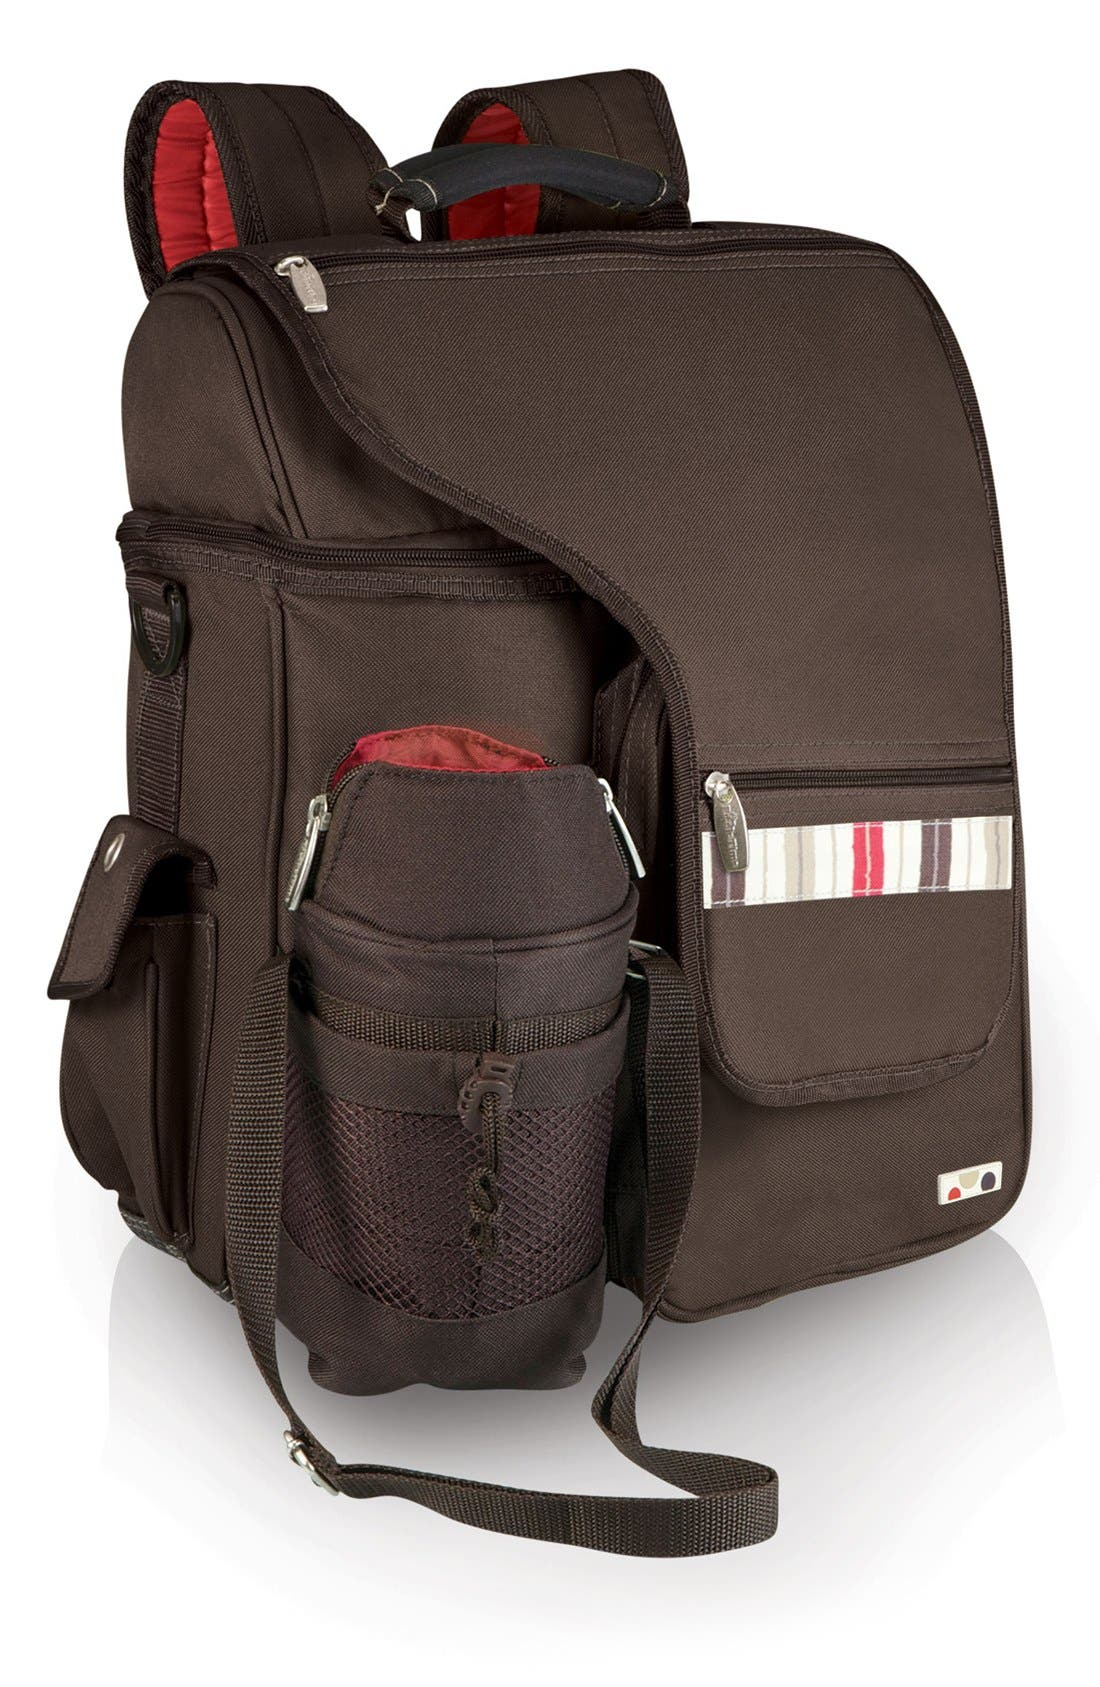 Main Image - Picnic Time Turismo Insulated Cooler Backpack